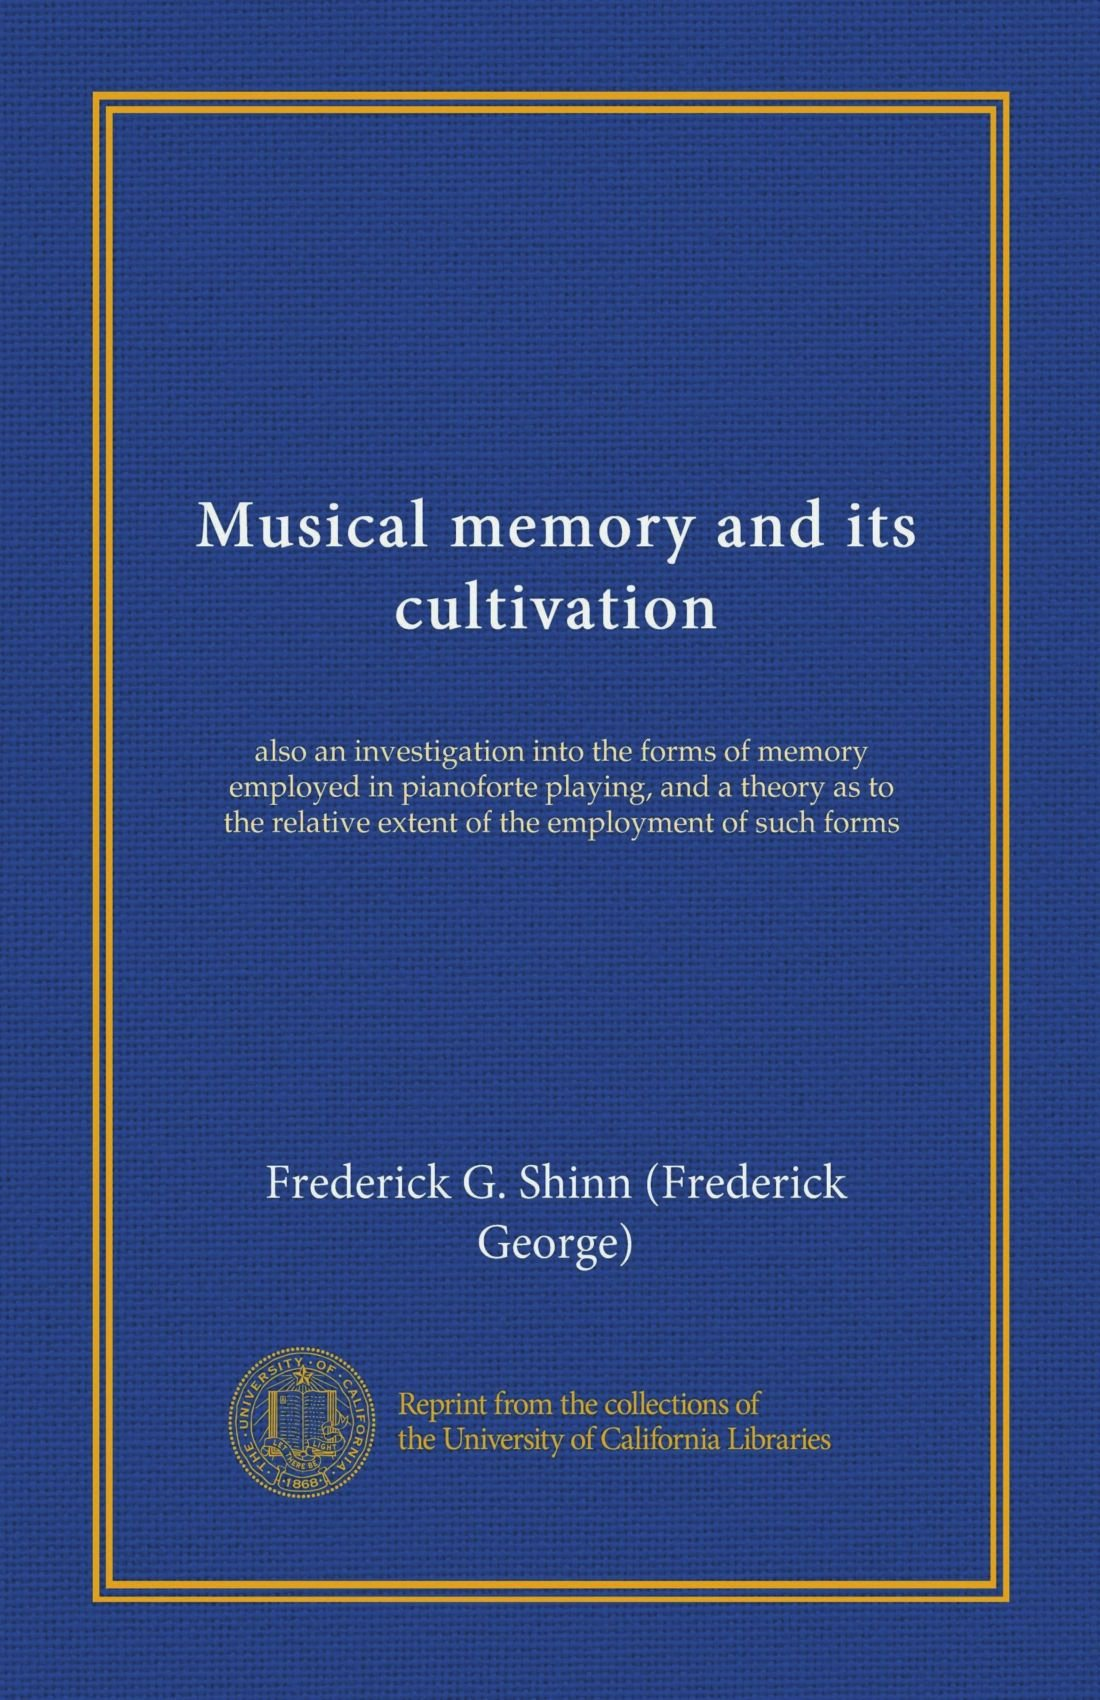 Download Musical memory and its cultivation (Vol-1): also an investigation into the forms of memory employed in pianoforte playing, and a theory as to the relative extent of the employment of such forms ebook